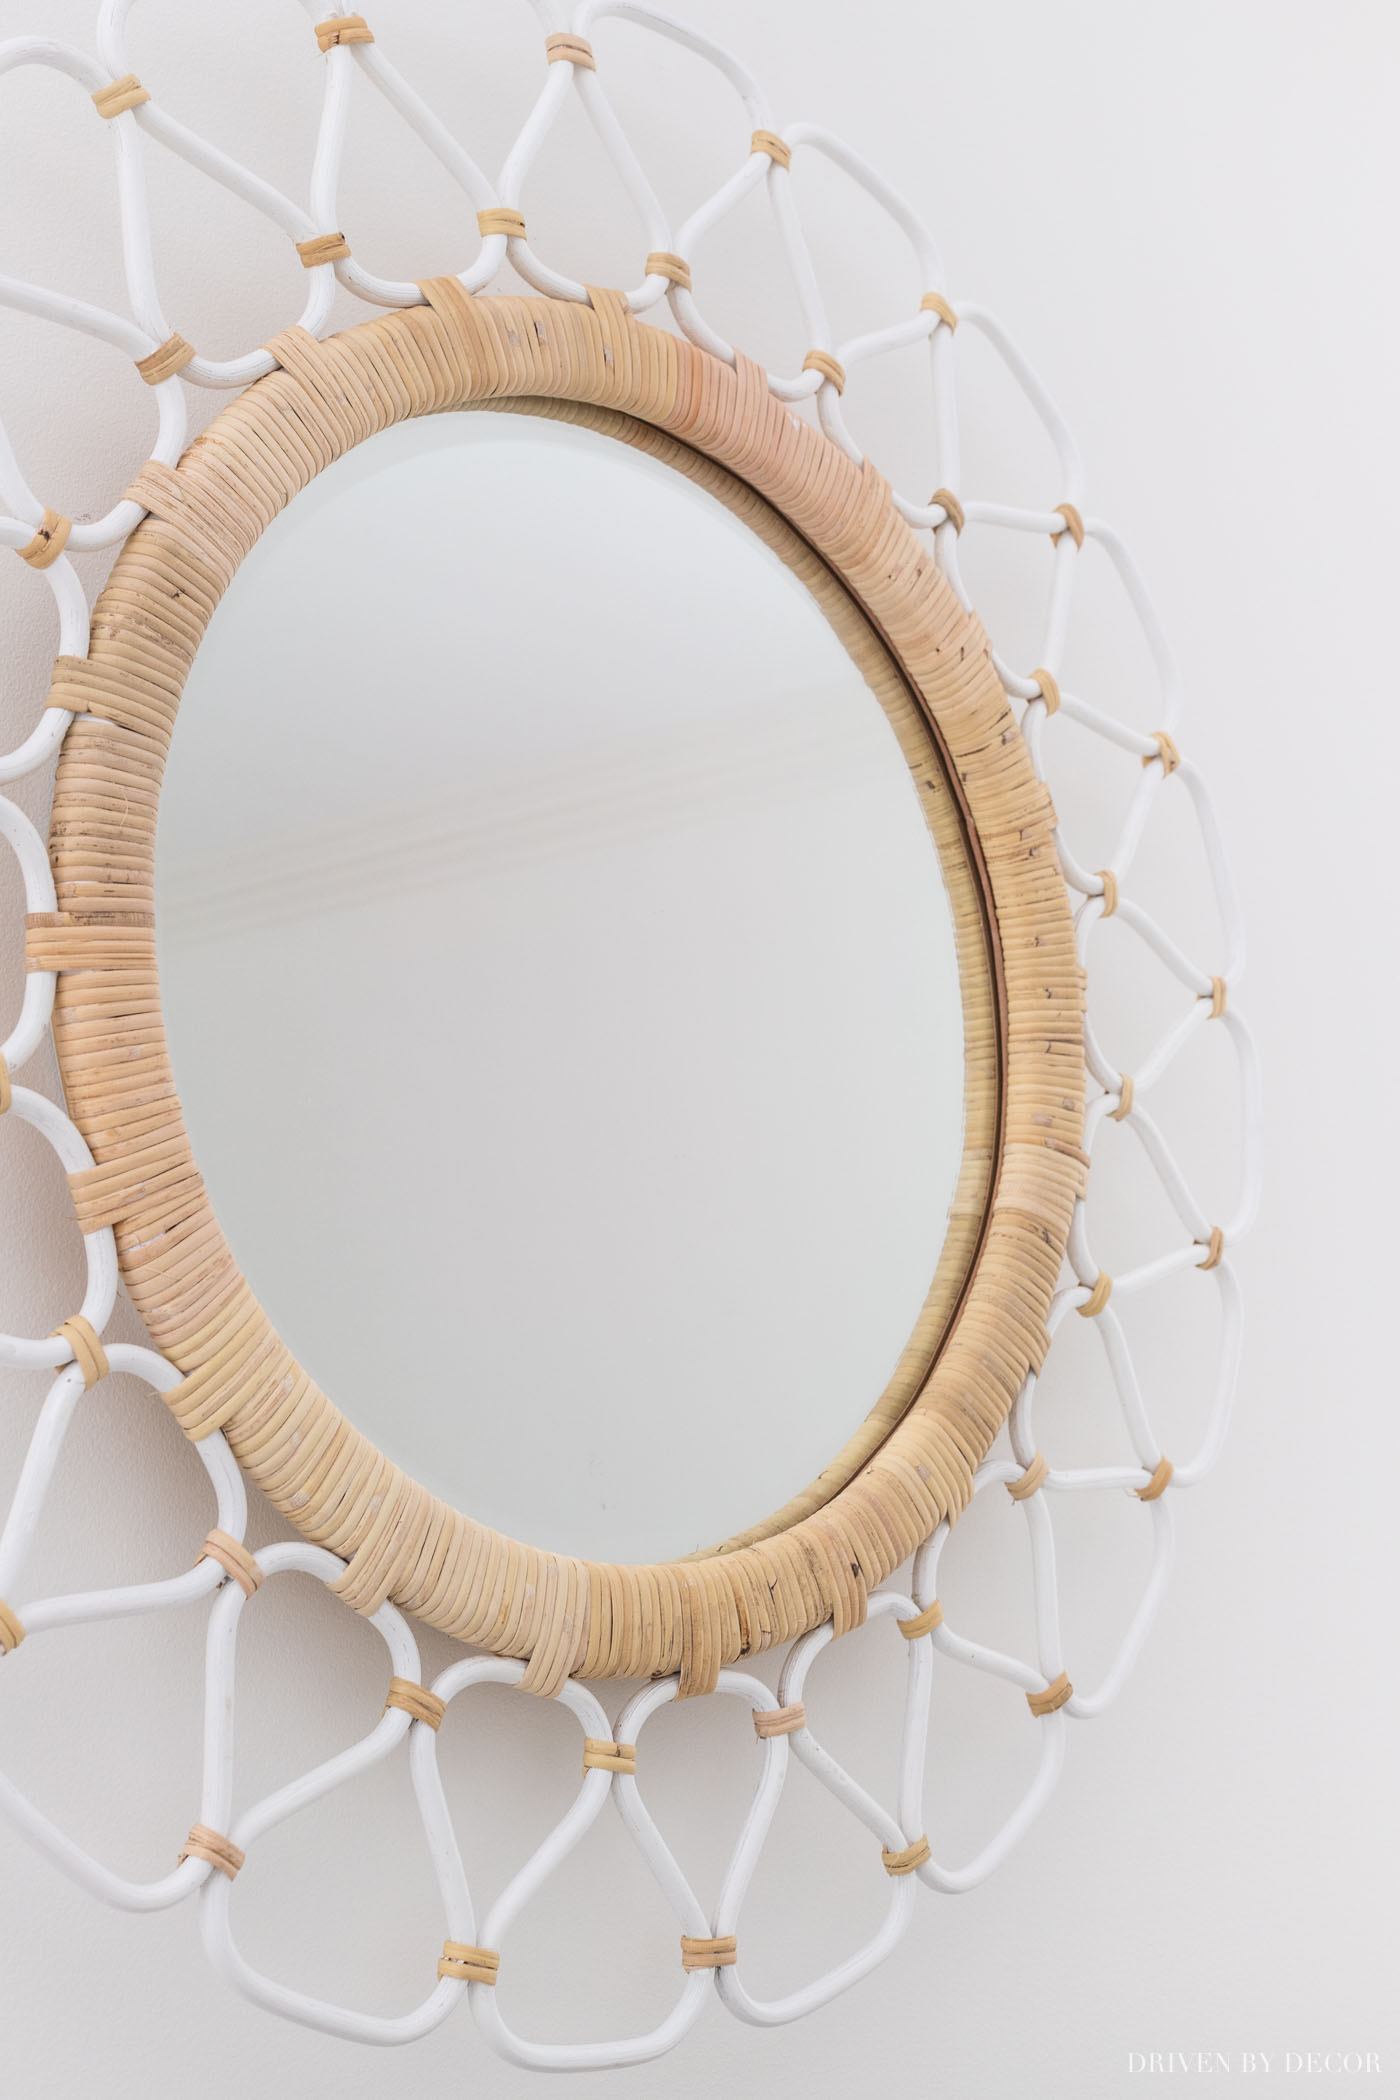 Love this rattan mirror that she put above the bed!